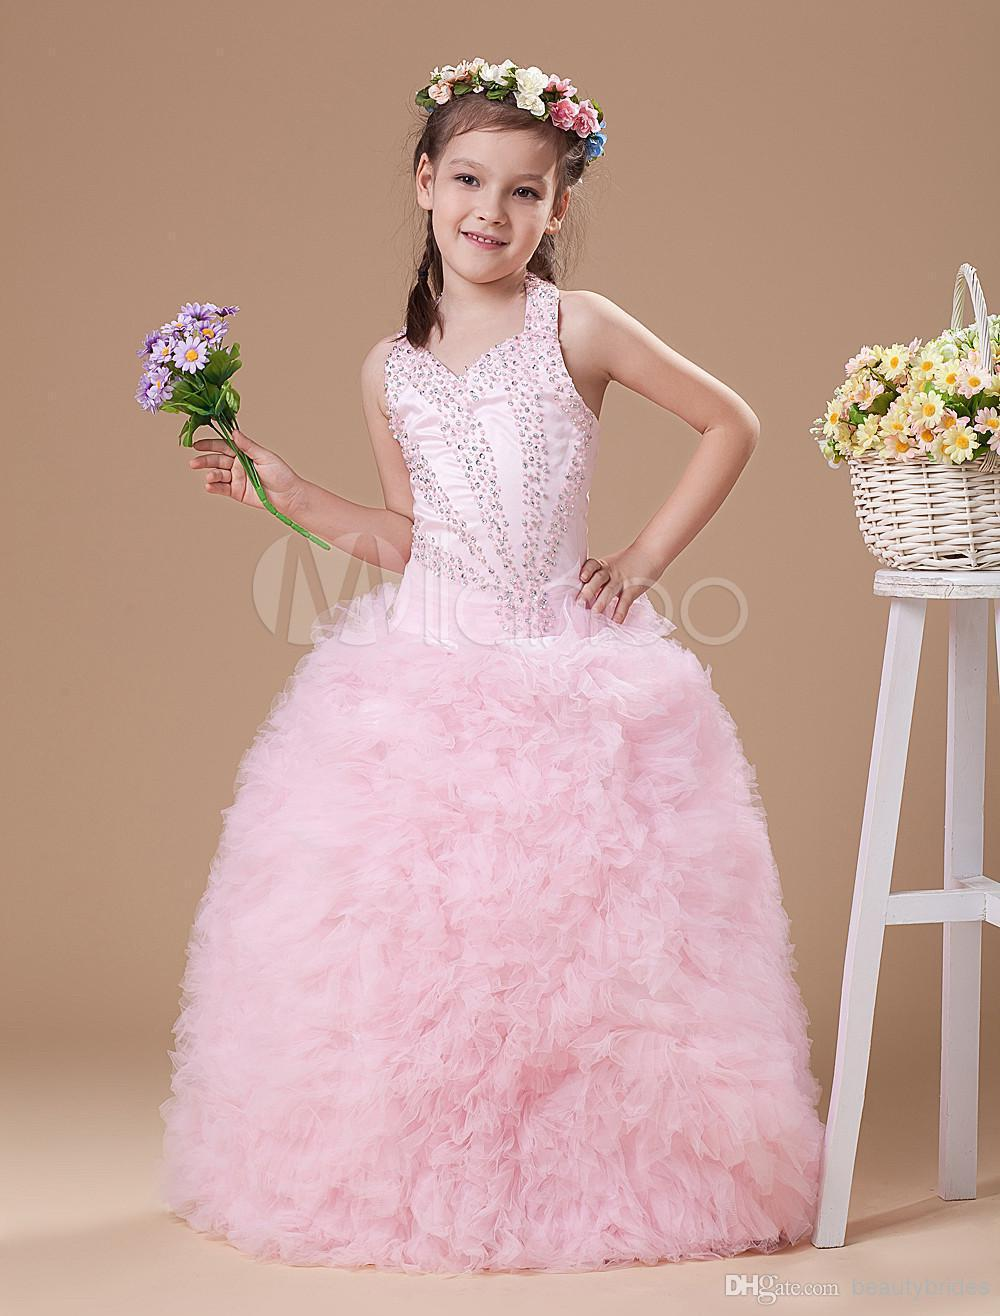 Petal Flower Girl Dress Little Girls Formal Dresses Long Eggplant ...